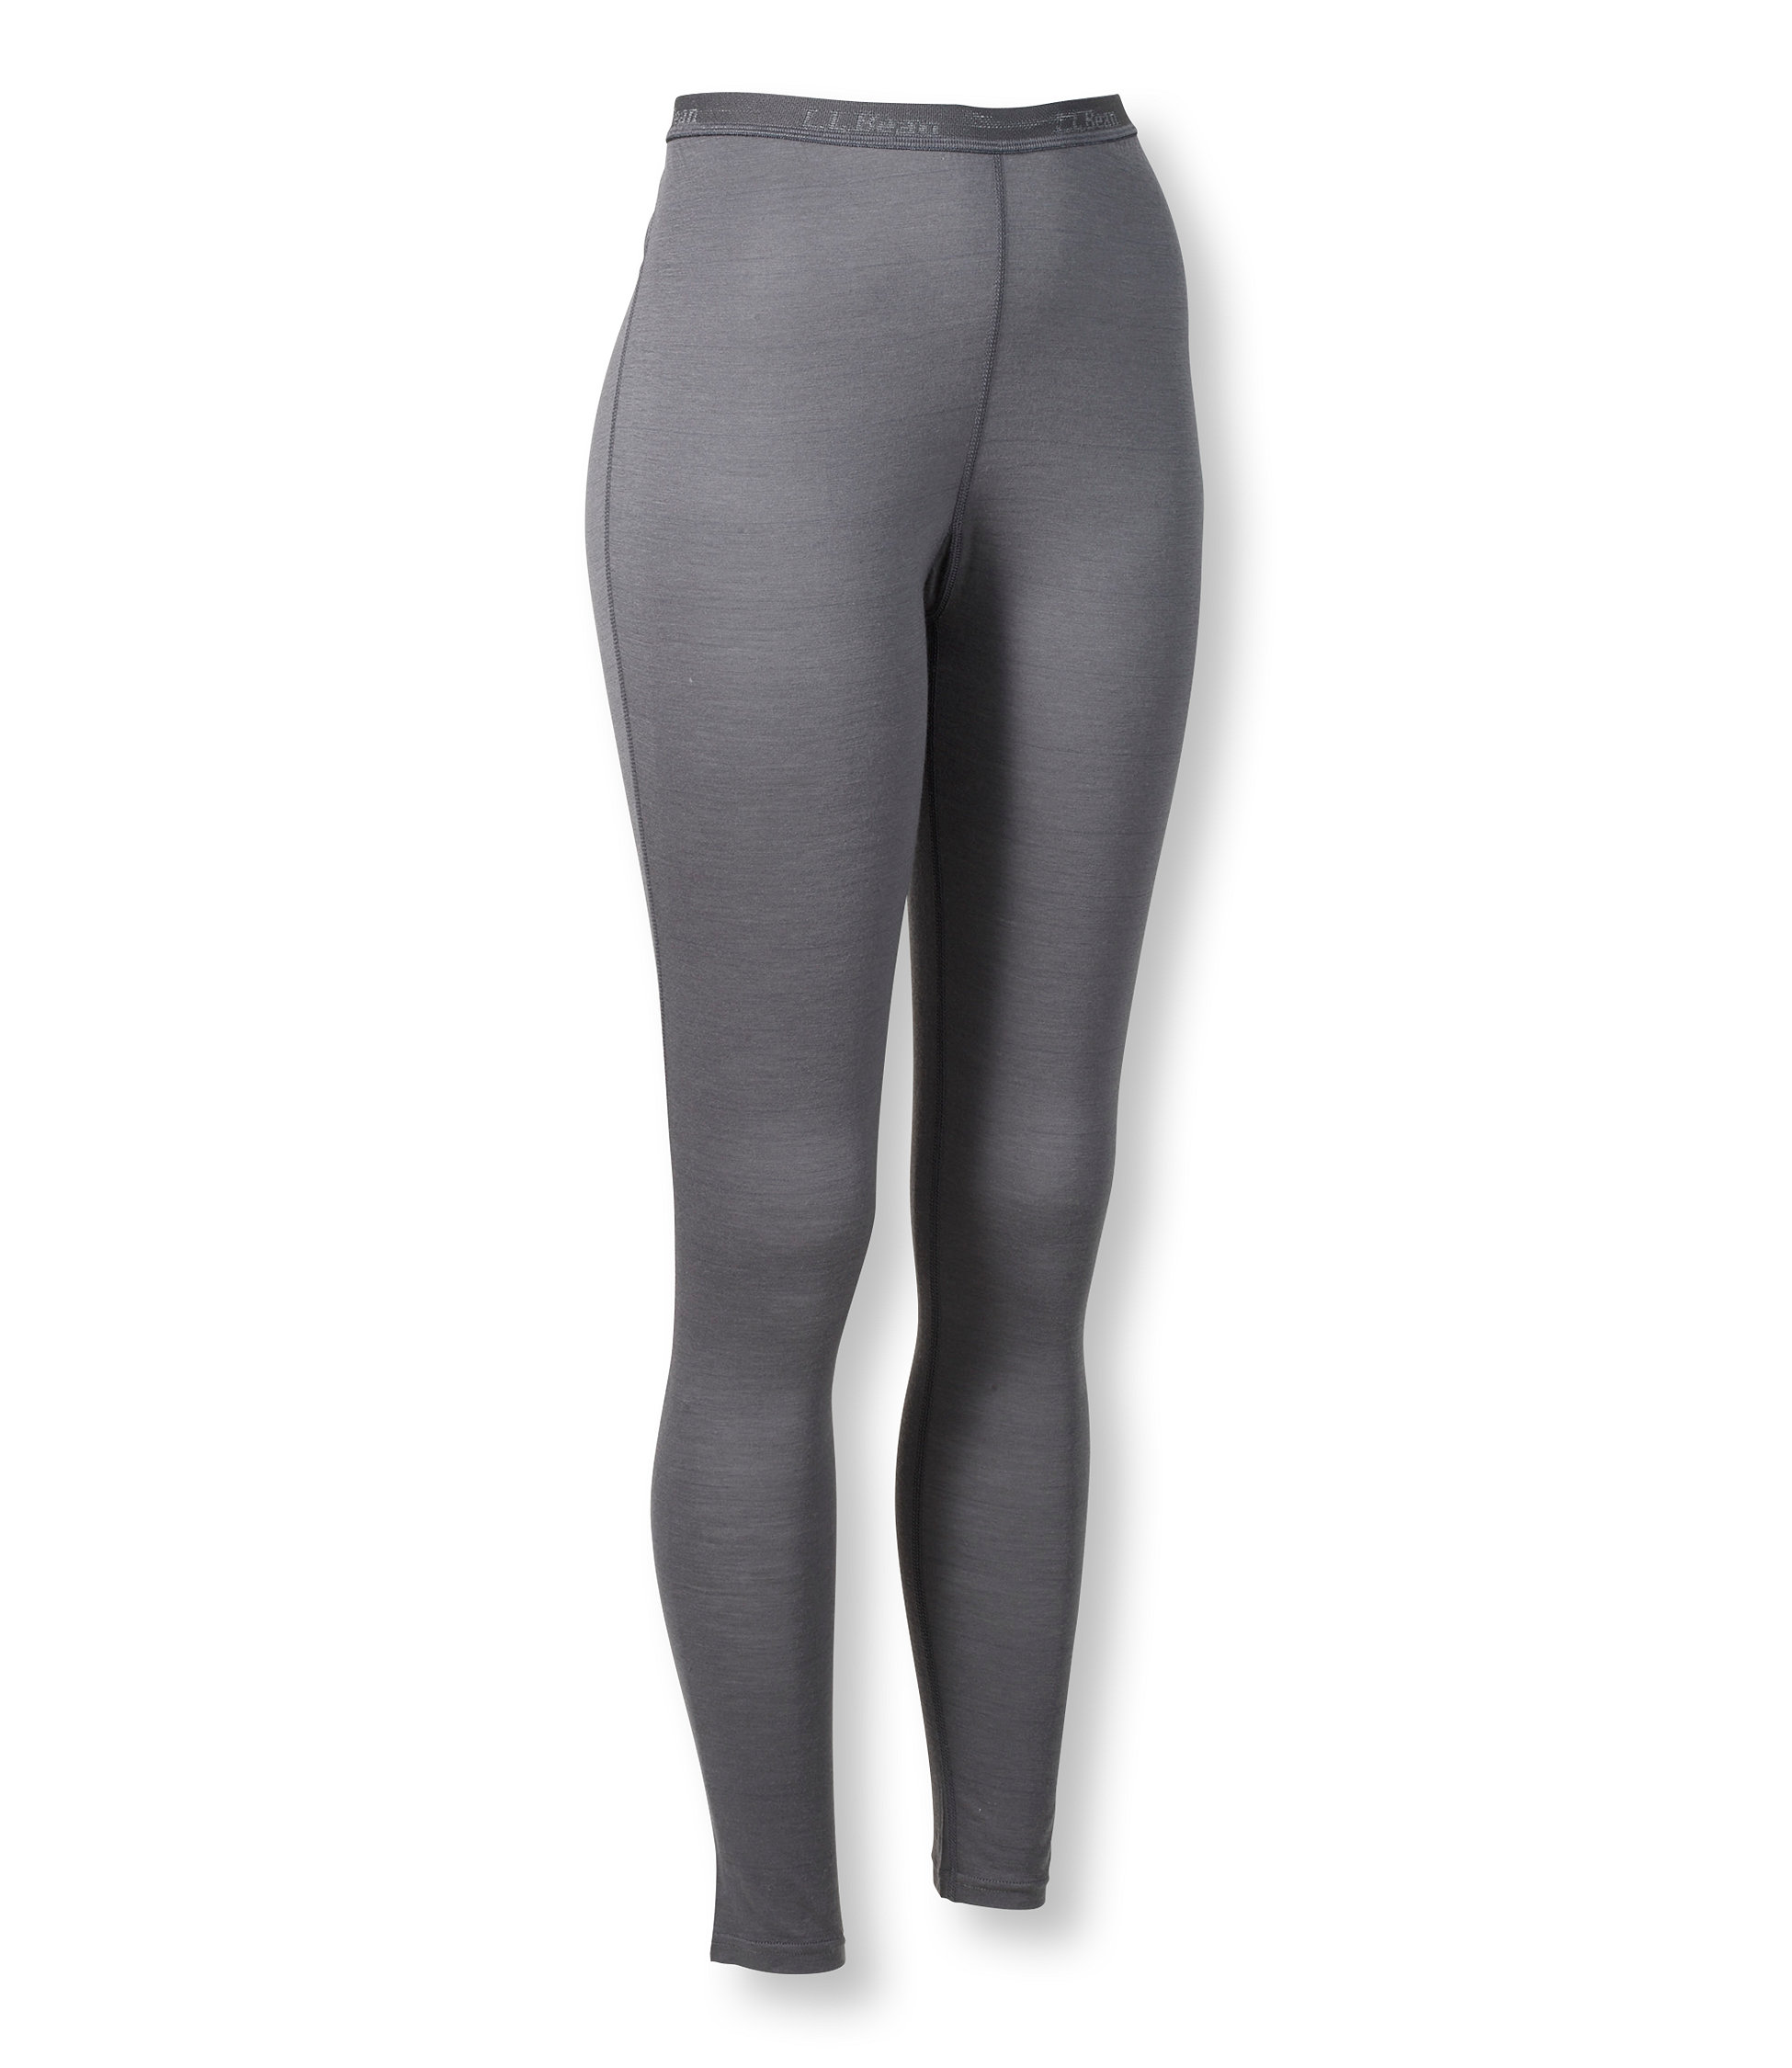 photo: L.L.Bean Cresta Wool Base Layer, Pants Lightweight base layer bottom